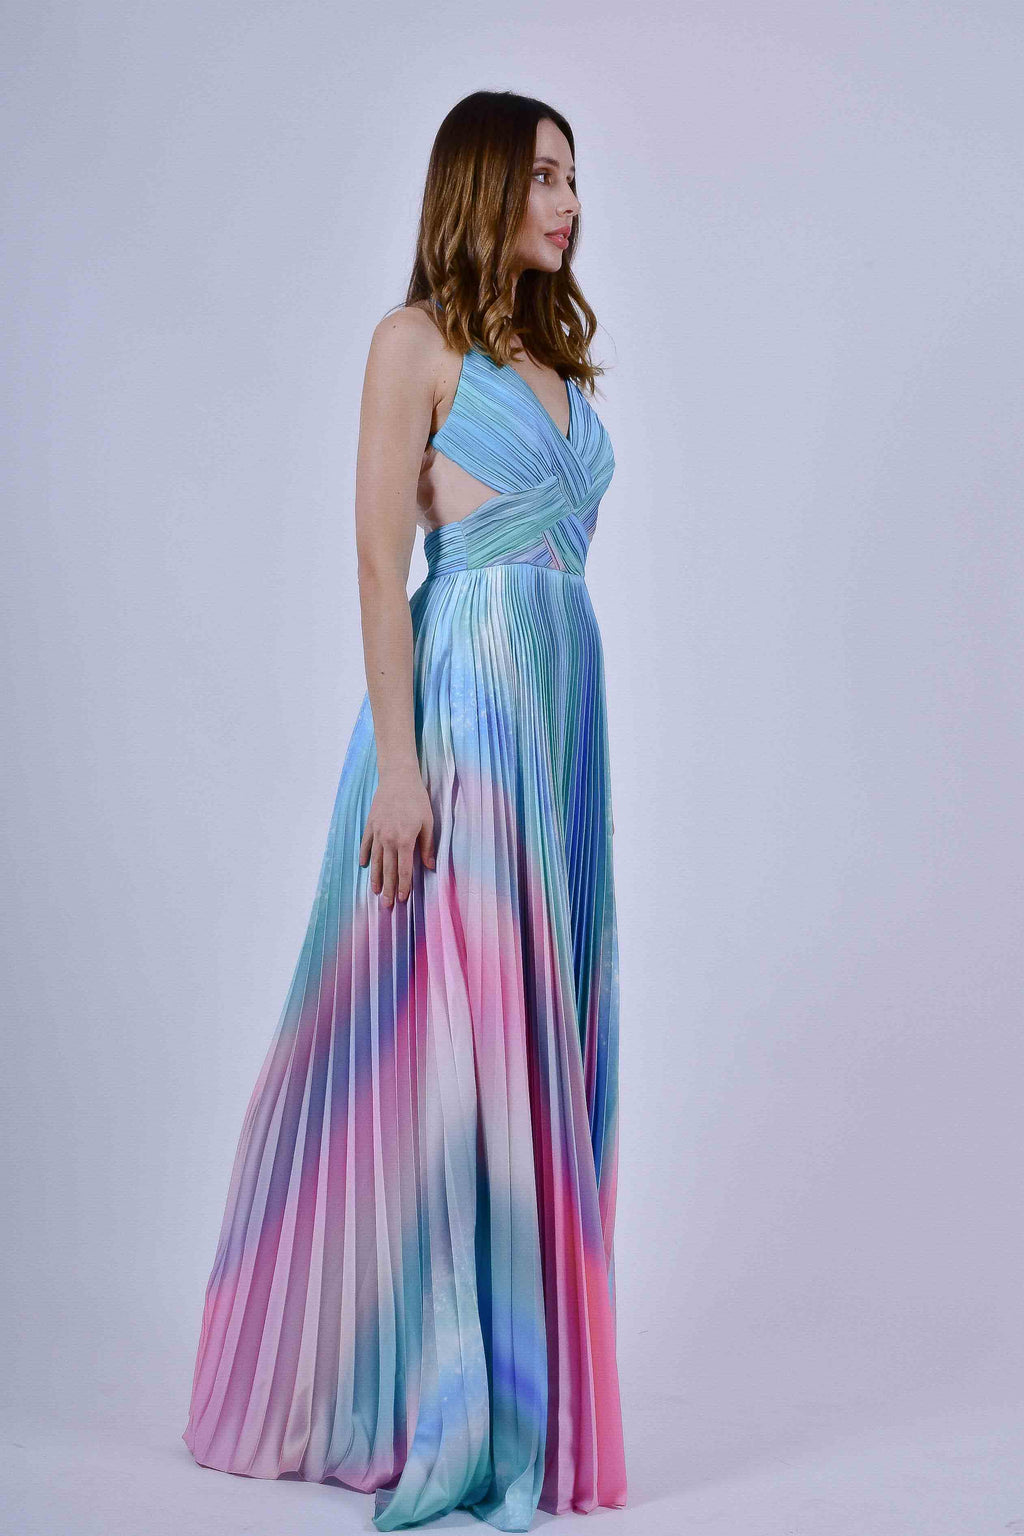 Rainbow Colored Ombre Satin Evening Gown with Spaghetti Straps